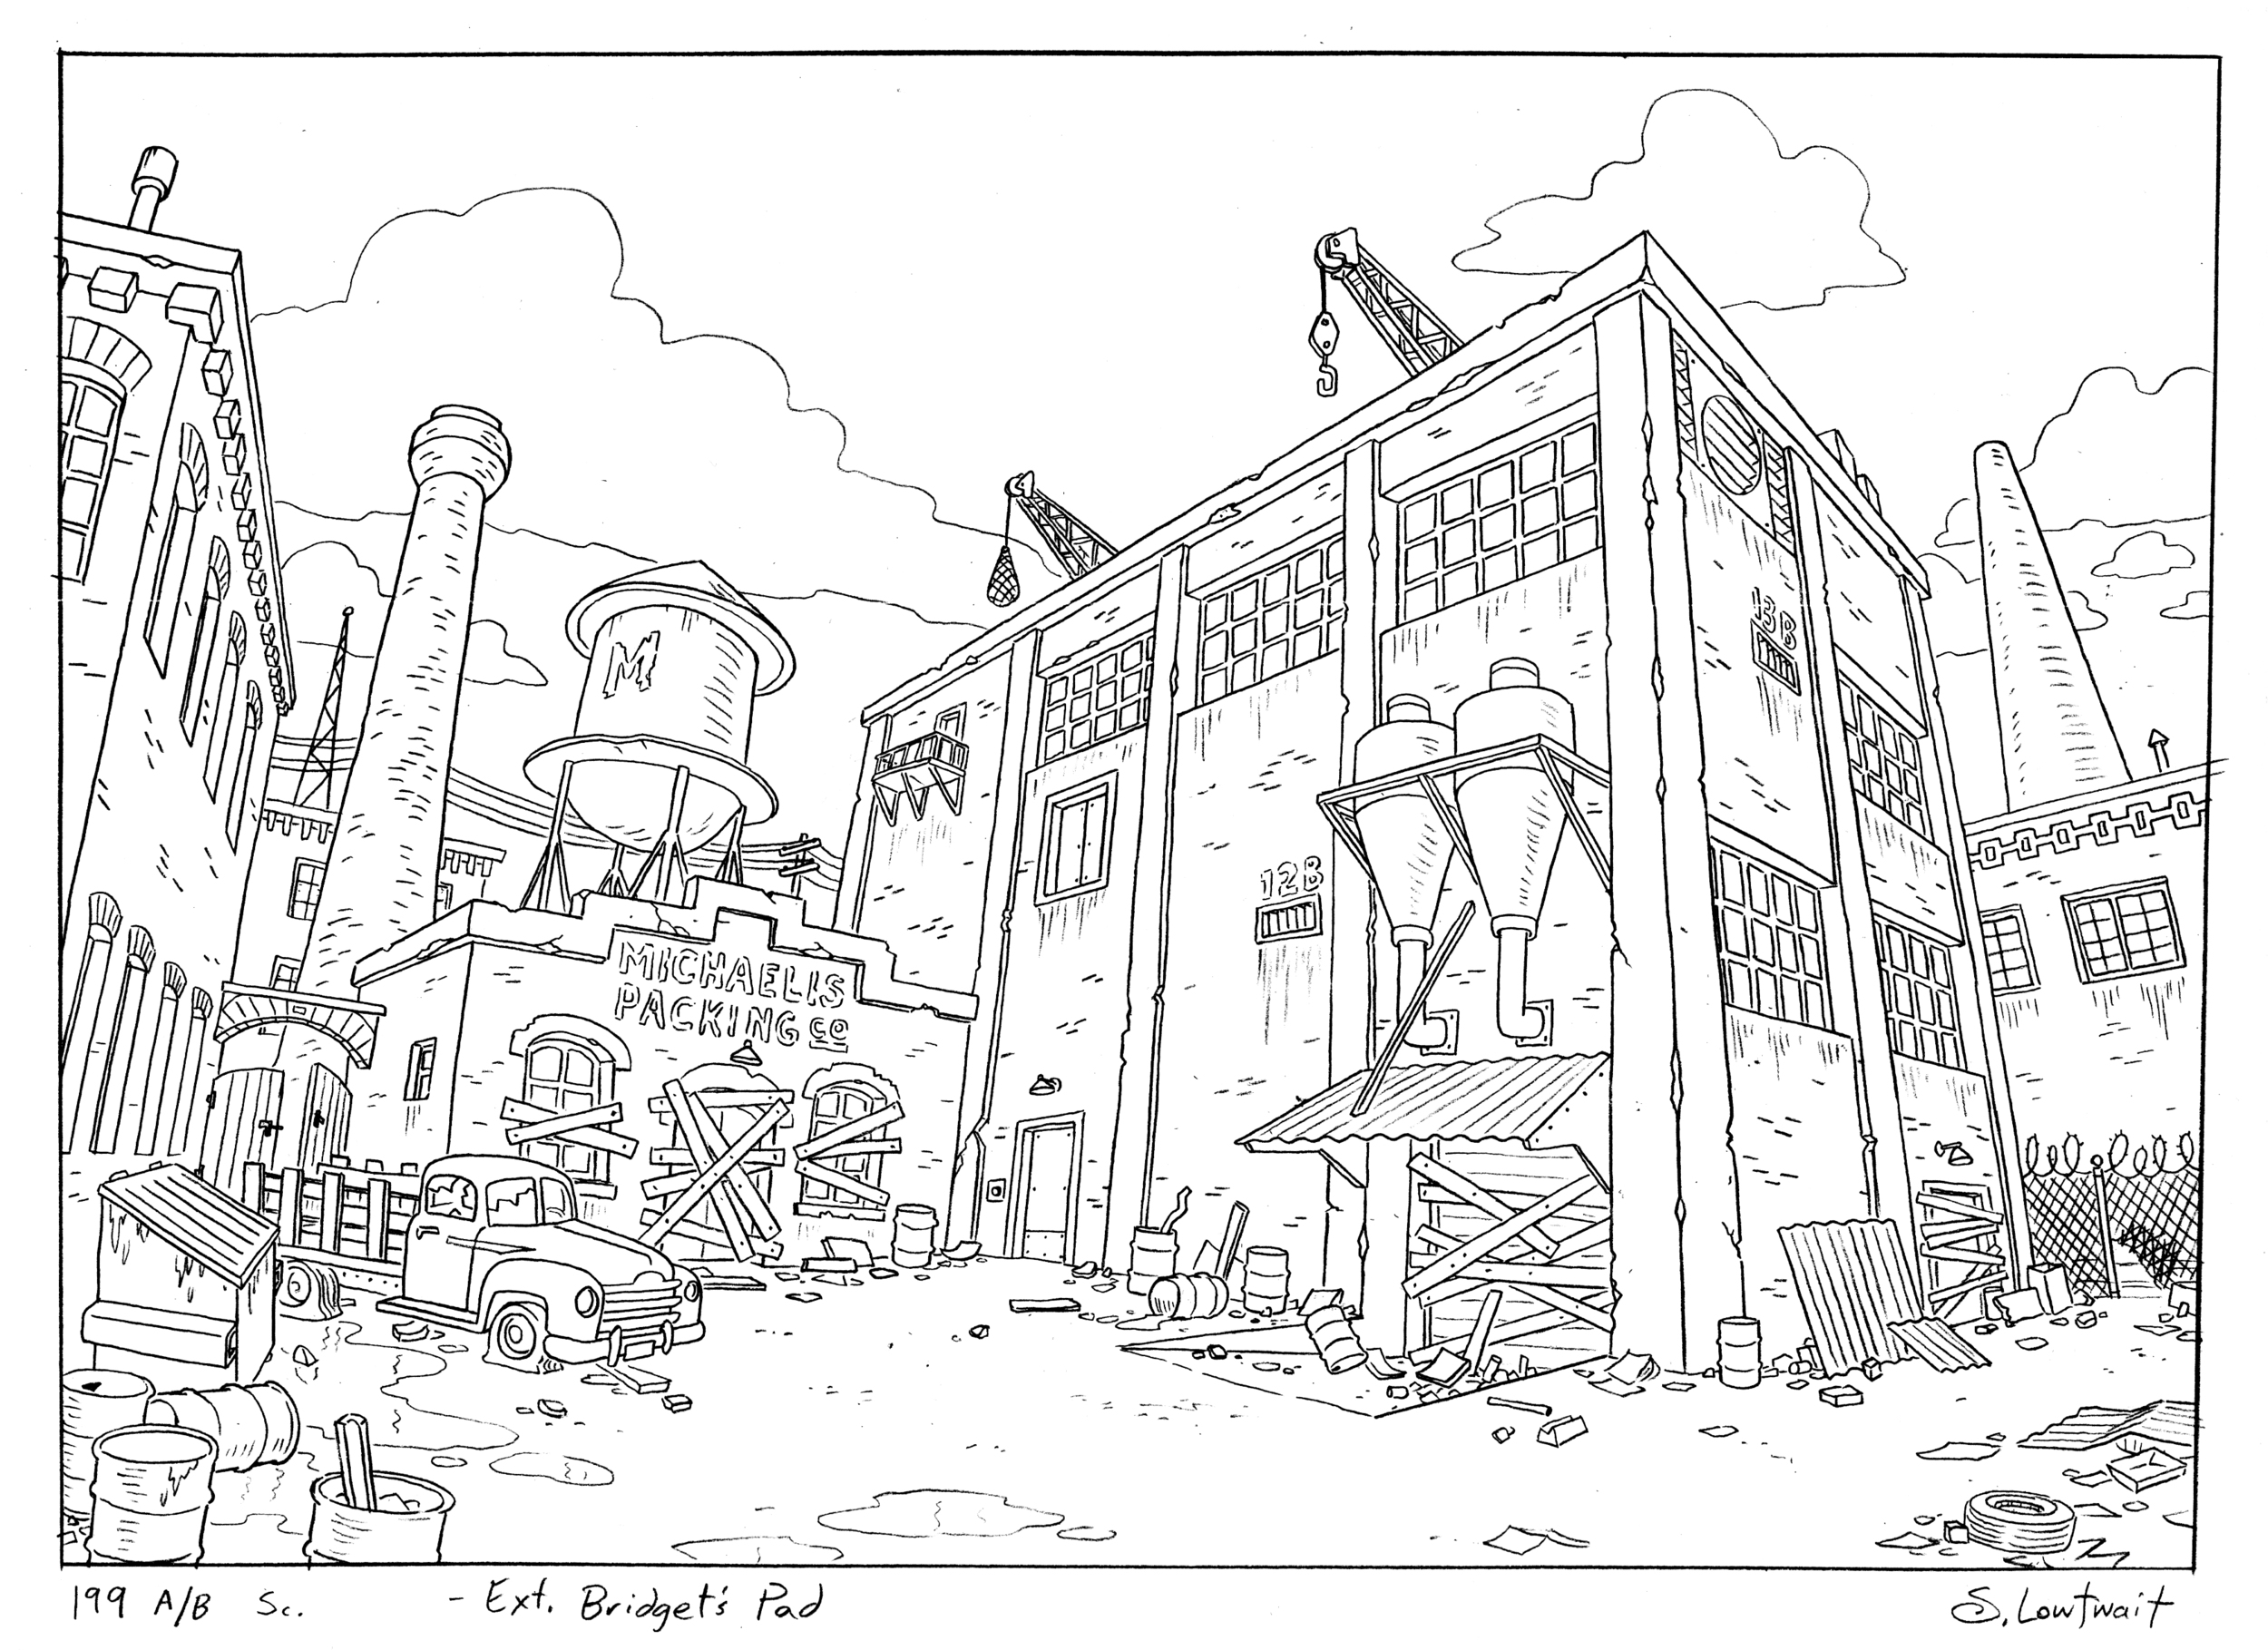 What is Animation Background Layout Steve Lowtwait Art 1000x728